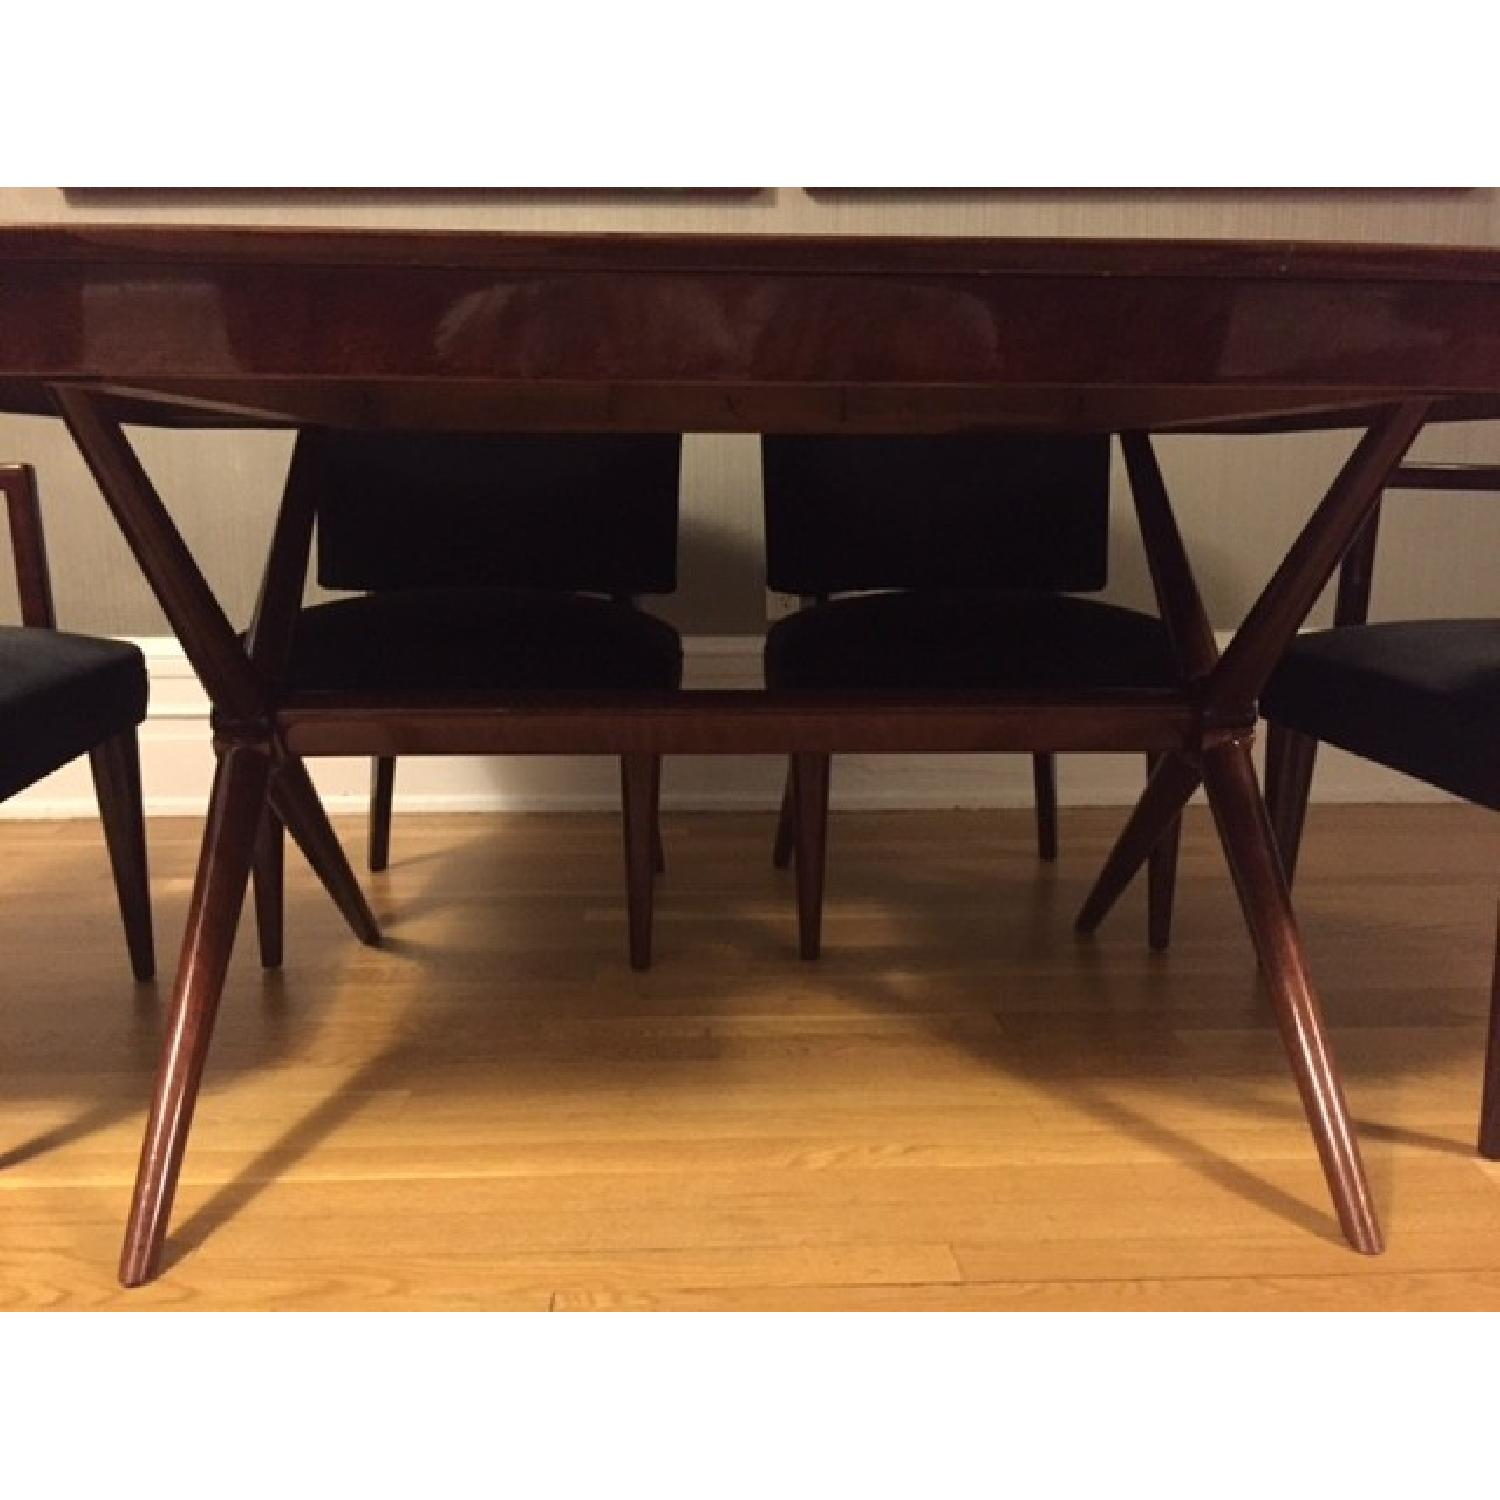 Depression Modern Art Deco Dining Room Table w/ 6 Chairs - image-4